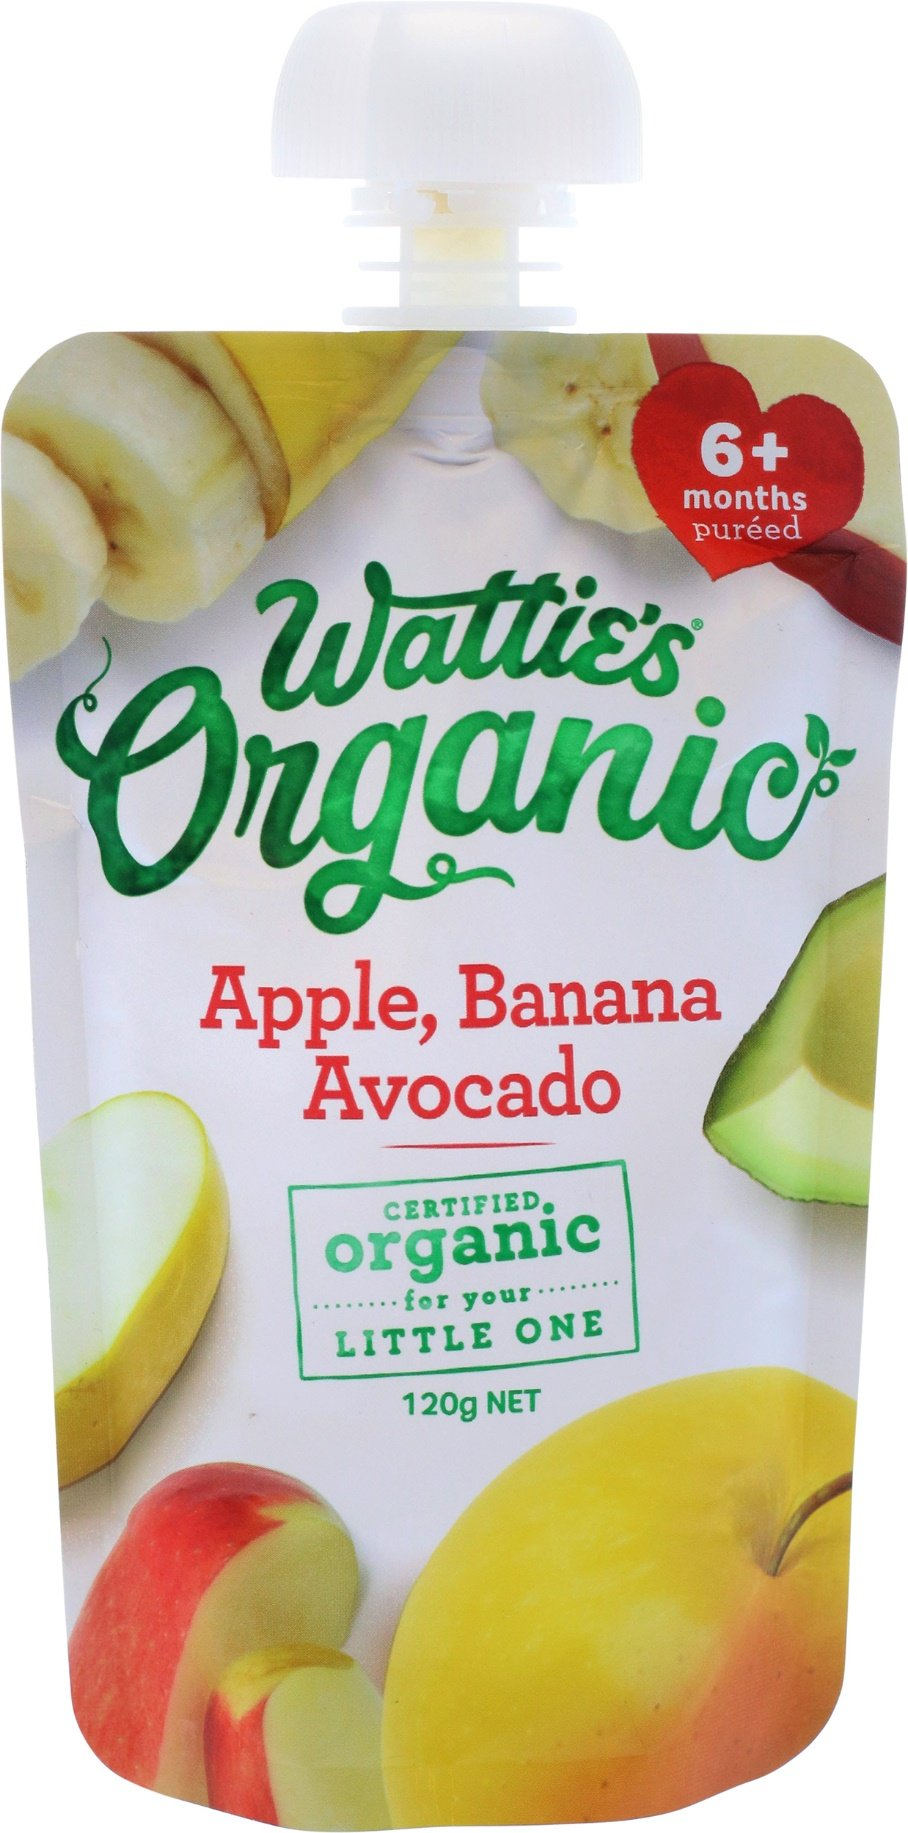 Wattie's Organic Apple, Banana & Avocado